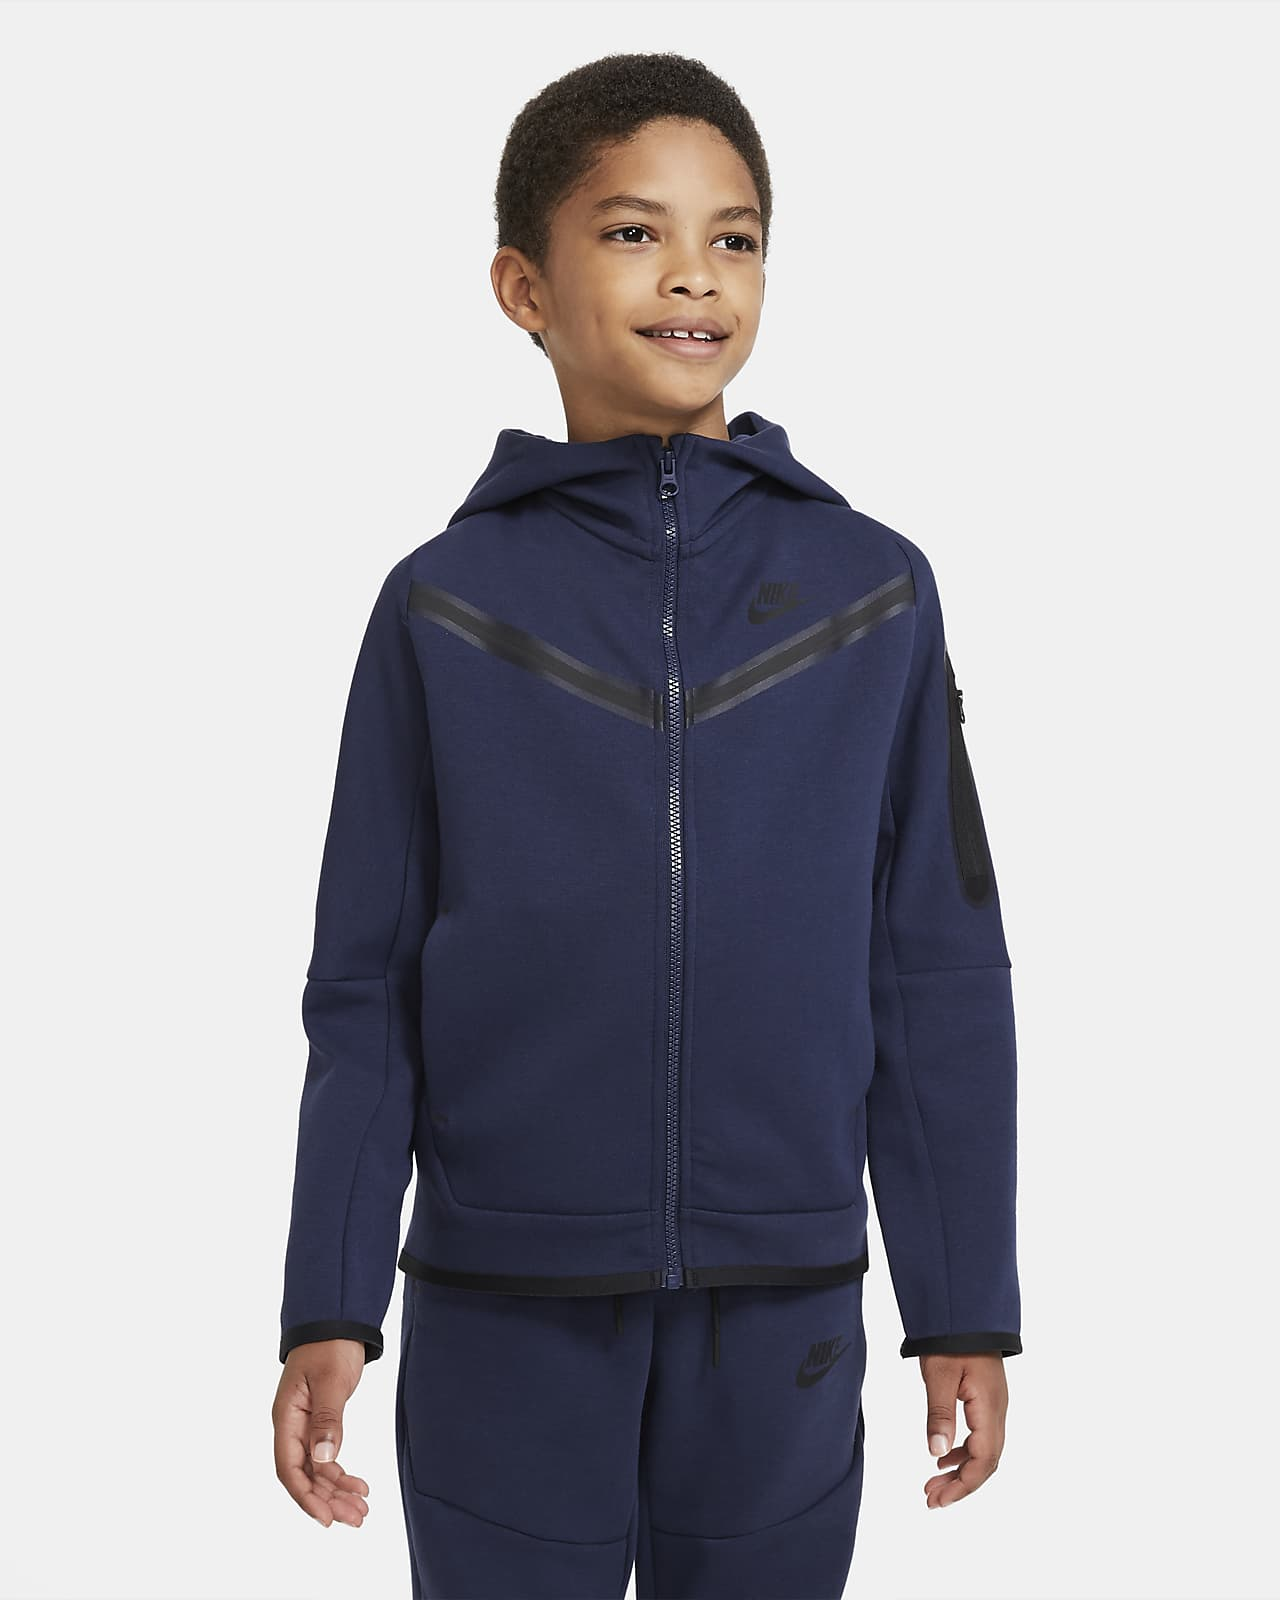 Nike Sportswear Tech Fleece Older Kids' (Boys') Full-Zip Hoodie